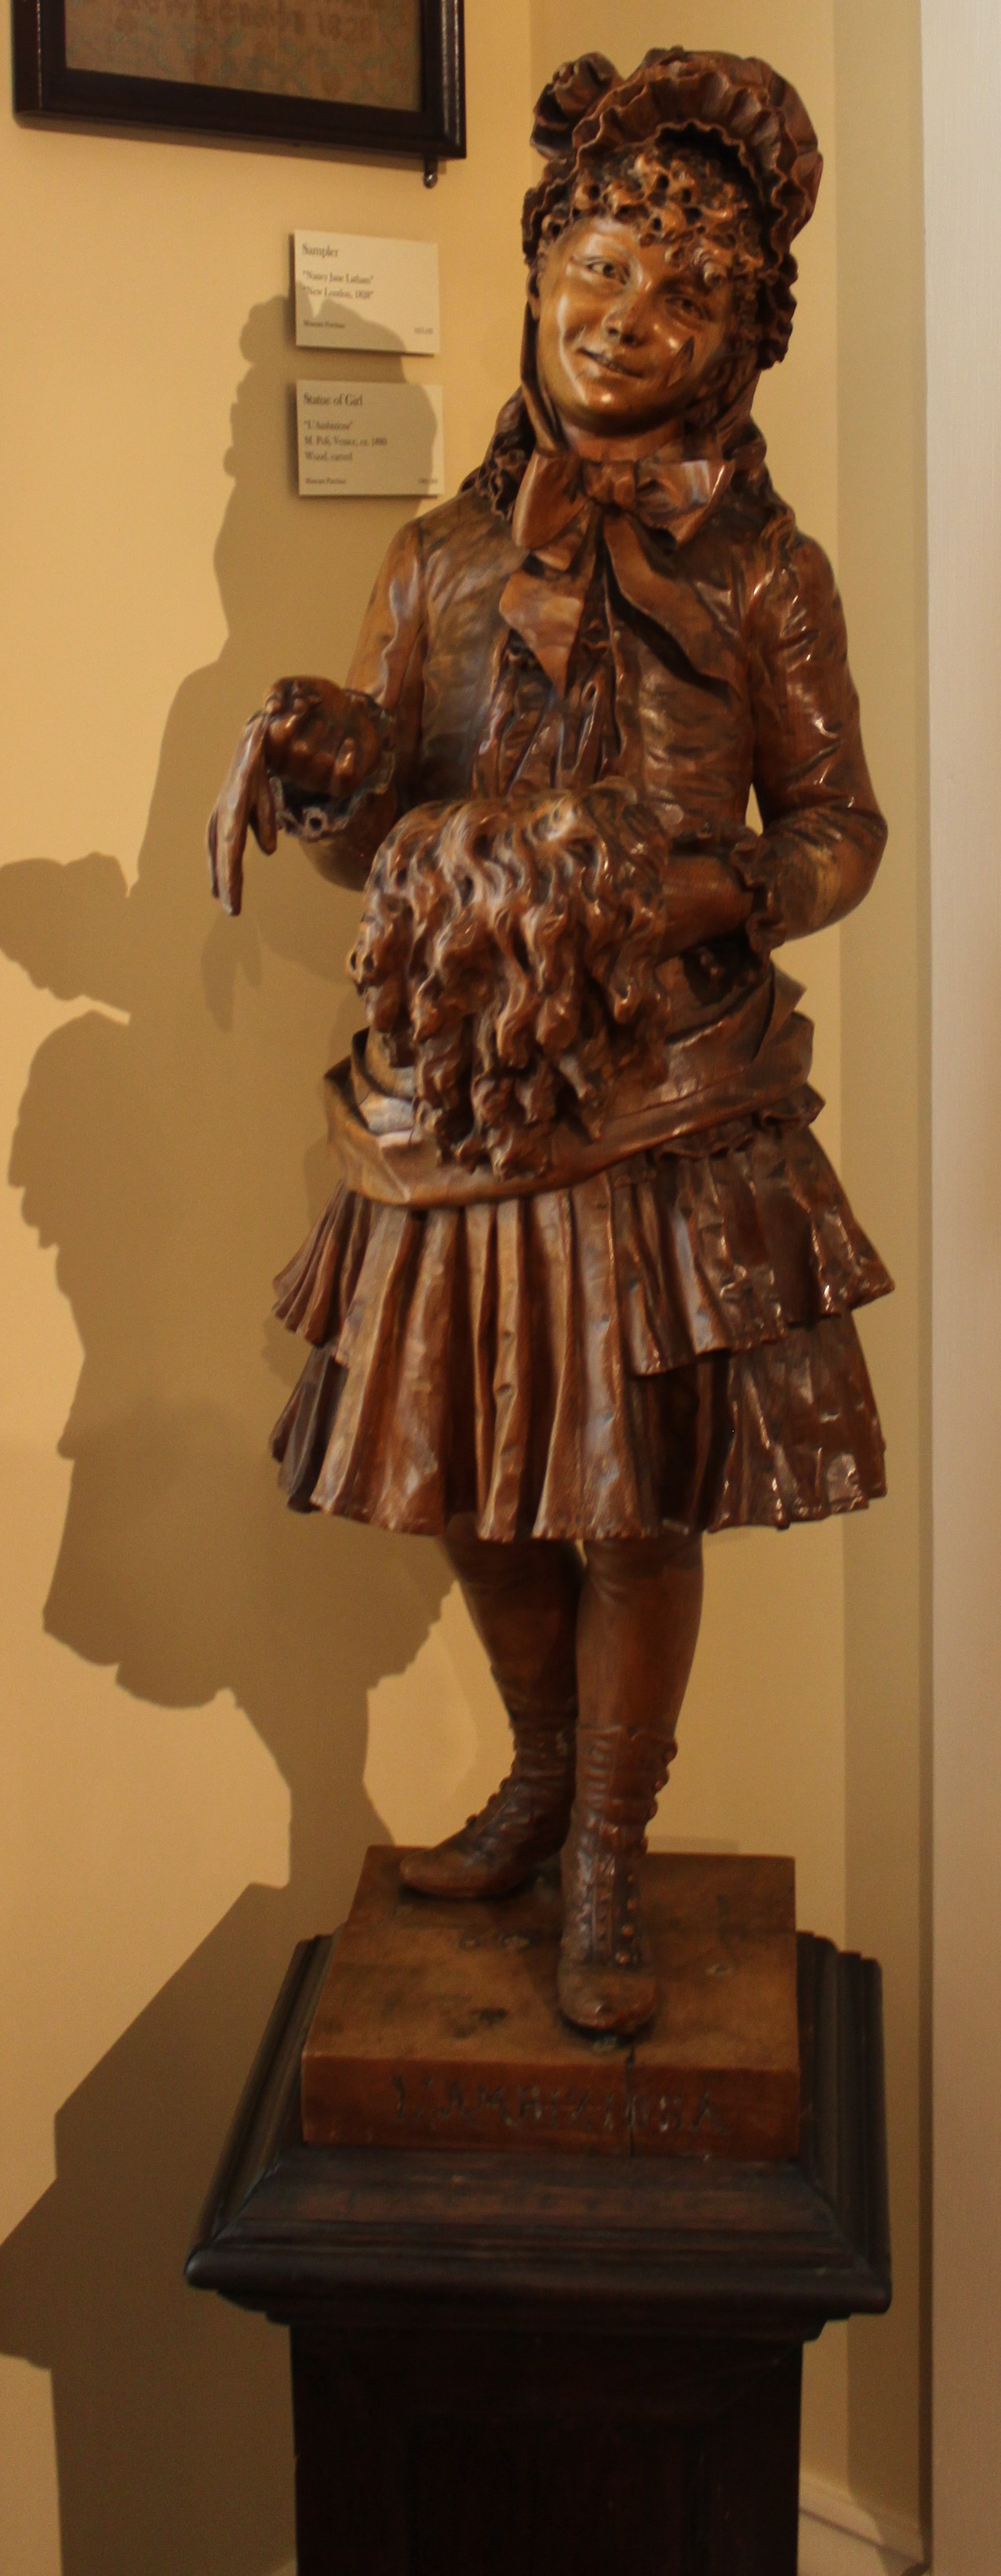 "Carved Wood Statue (Italian, 19th Century). The statue is of a young girl in a dress, bonnet and boots holding a fur muff and a glove. The statue is signed on the front of the wood platform base, ""L'Ambiziosa"" and it is signed on the side of the base, ""M. Poli, Venezia""."